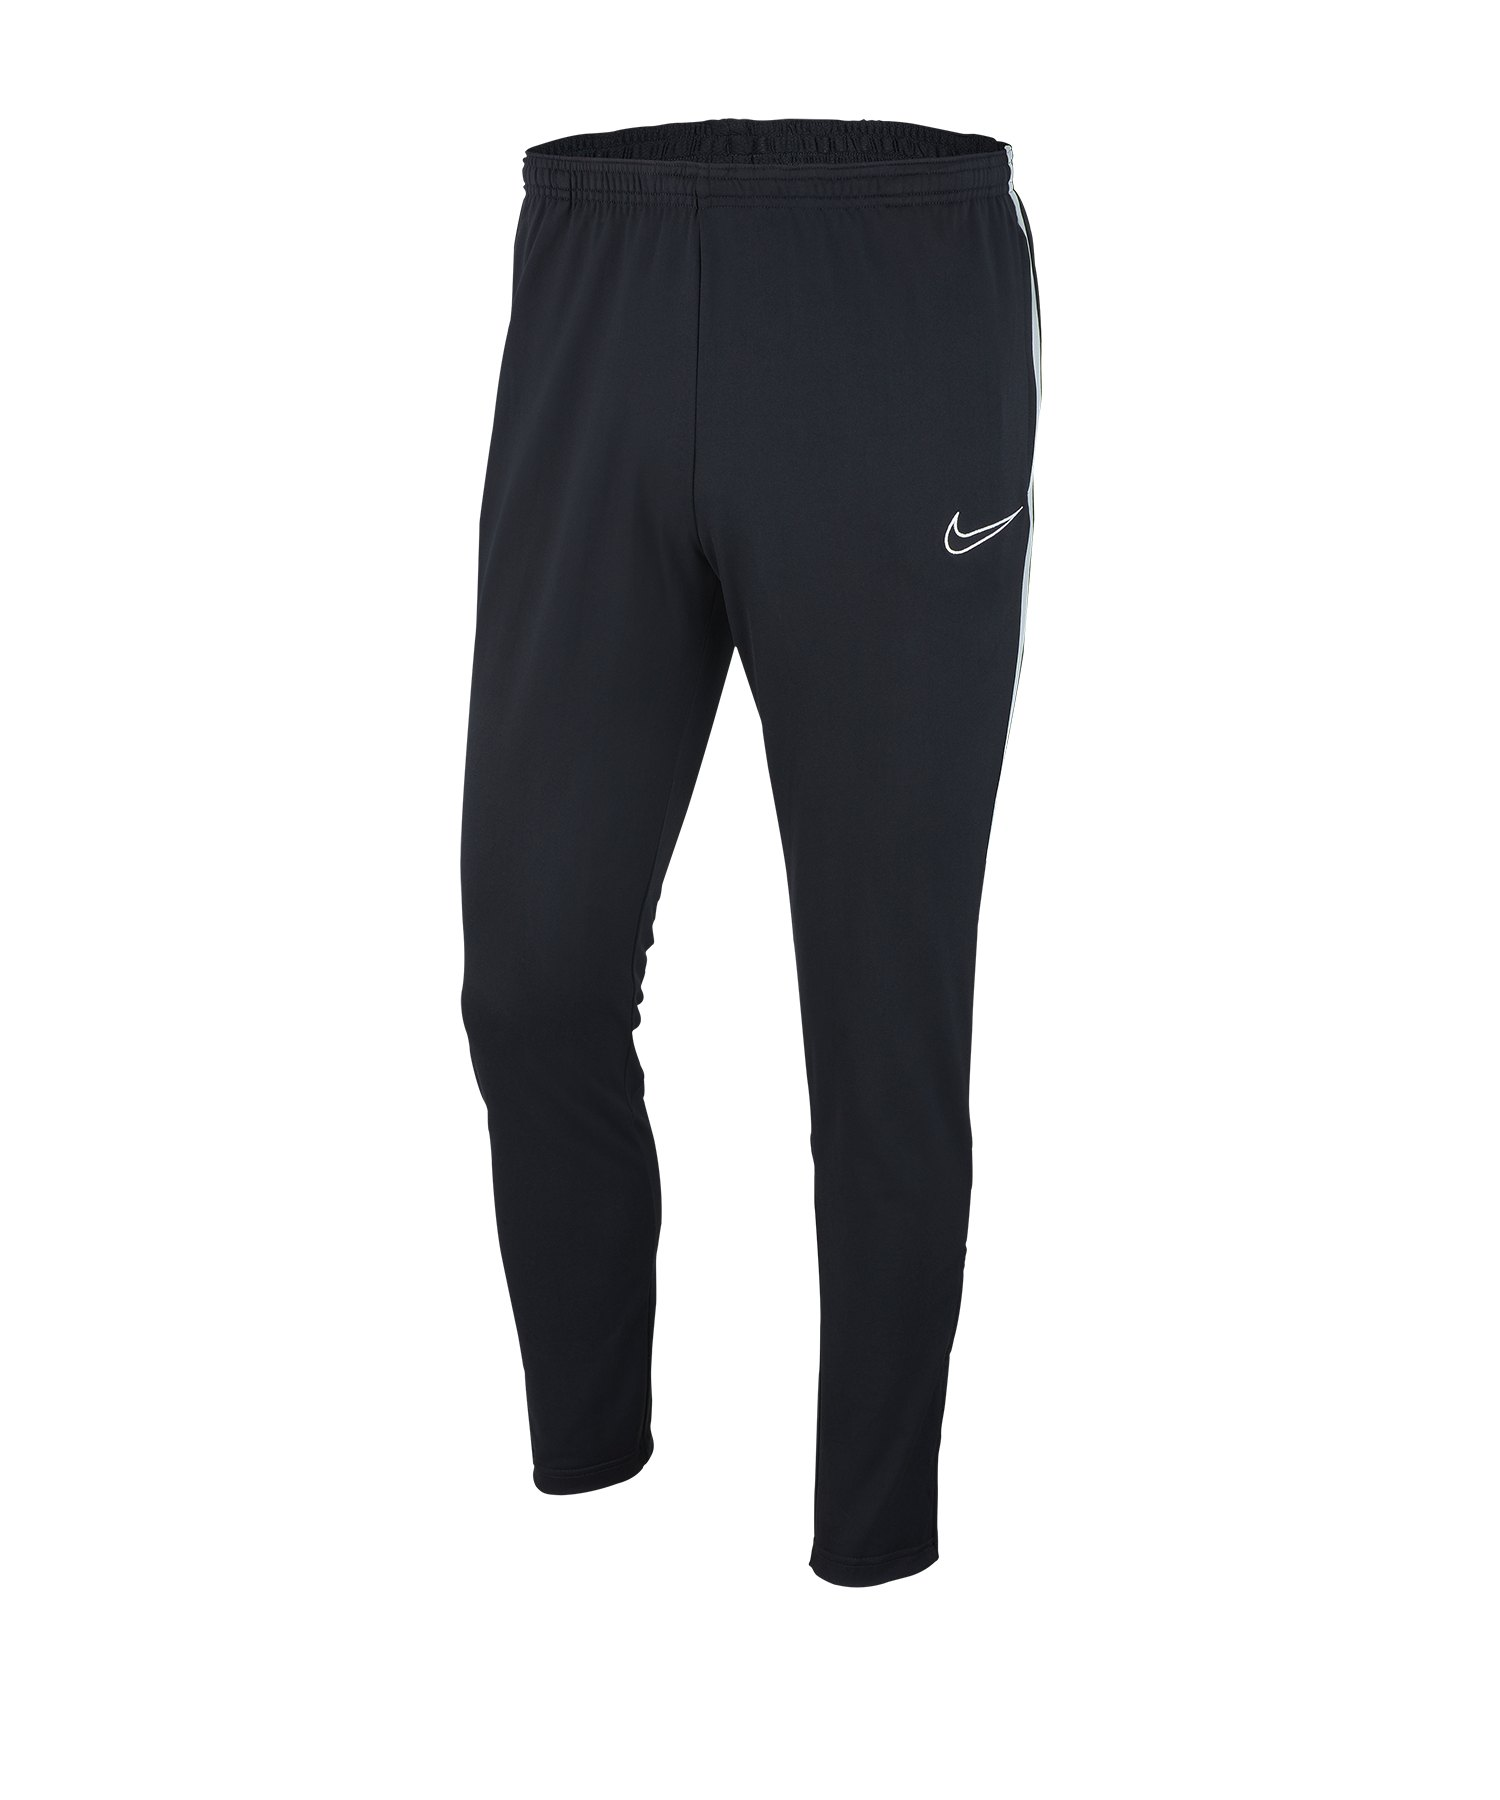 Nike Leggings Dri Fit Sporthose